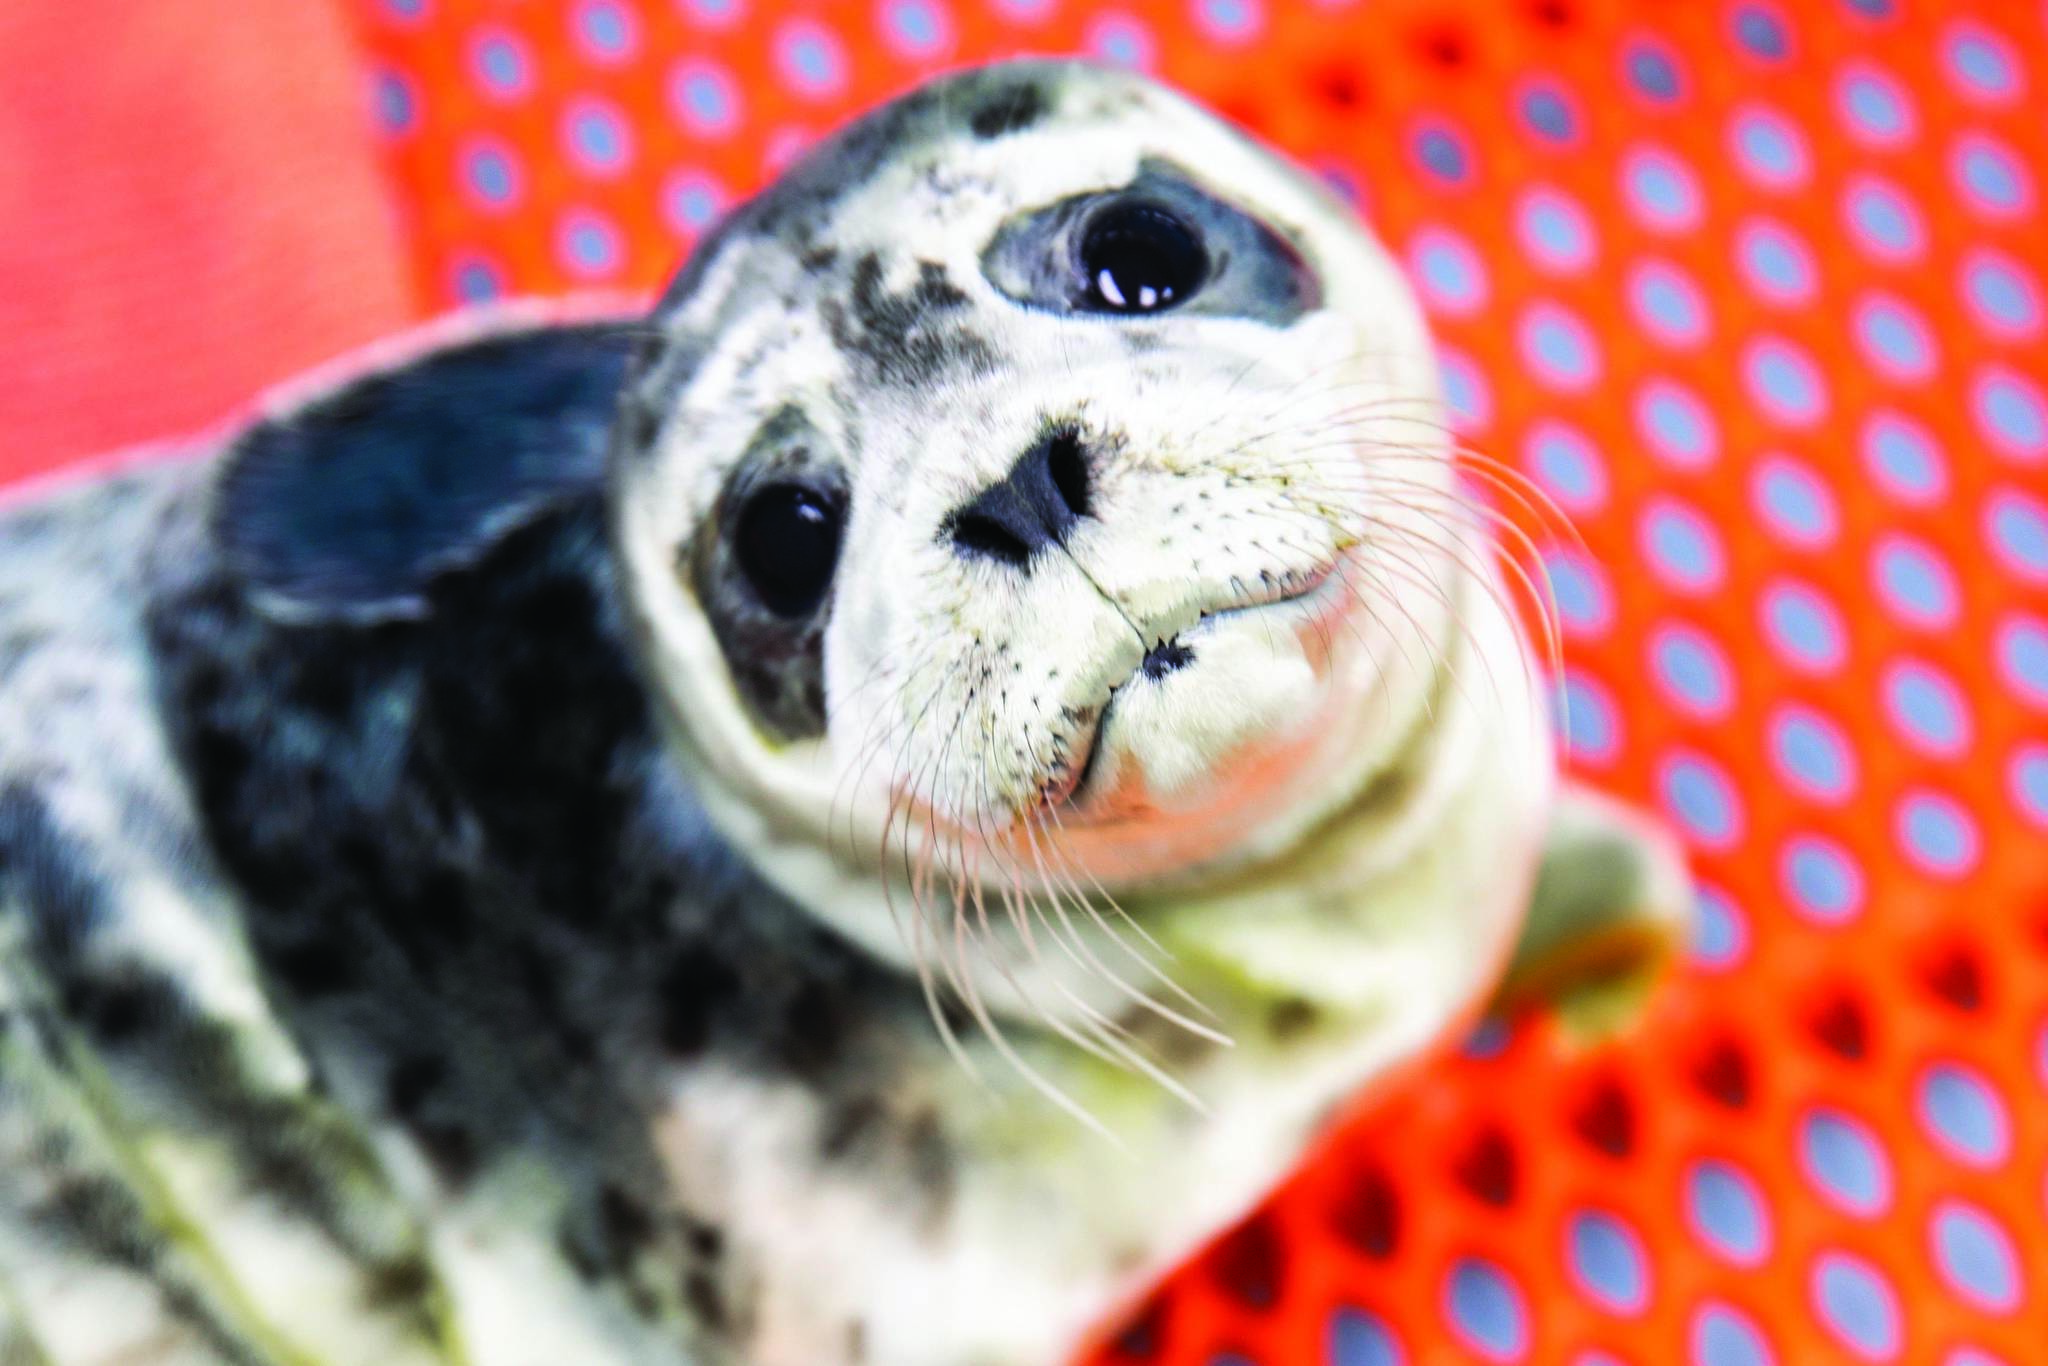 One of the recently rescued harbor seal pups is seen here at the Alaska SeaLife Center in Seward, Alaska in this undated photo. (Courtesy Chloe Rossman/Alaska SeaLife Center)